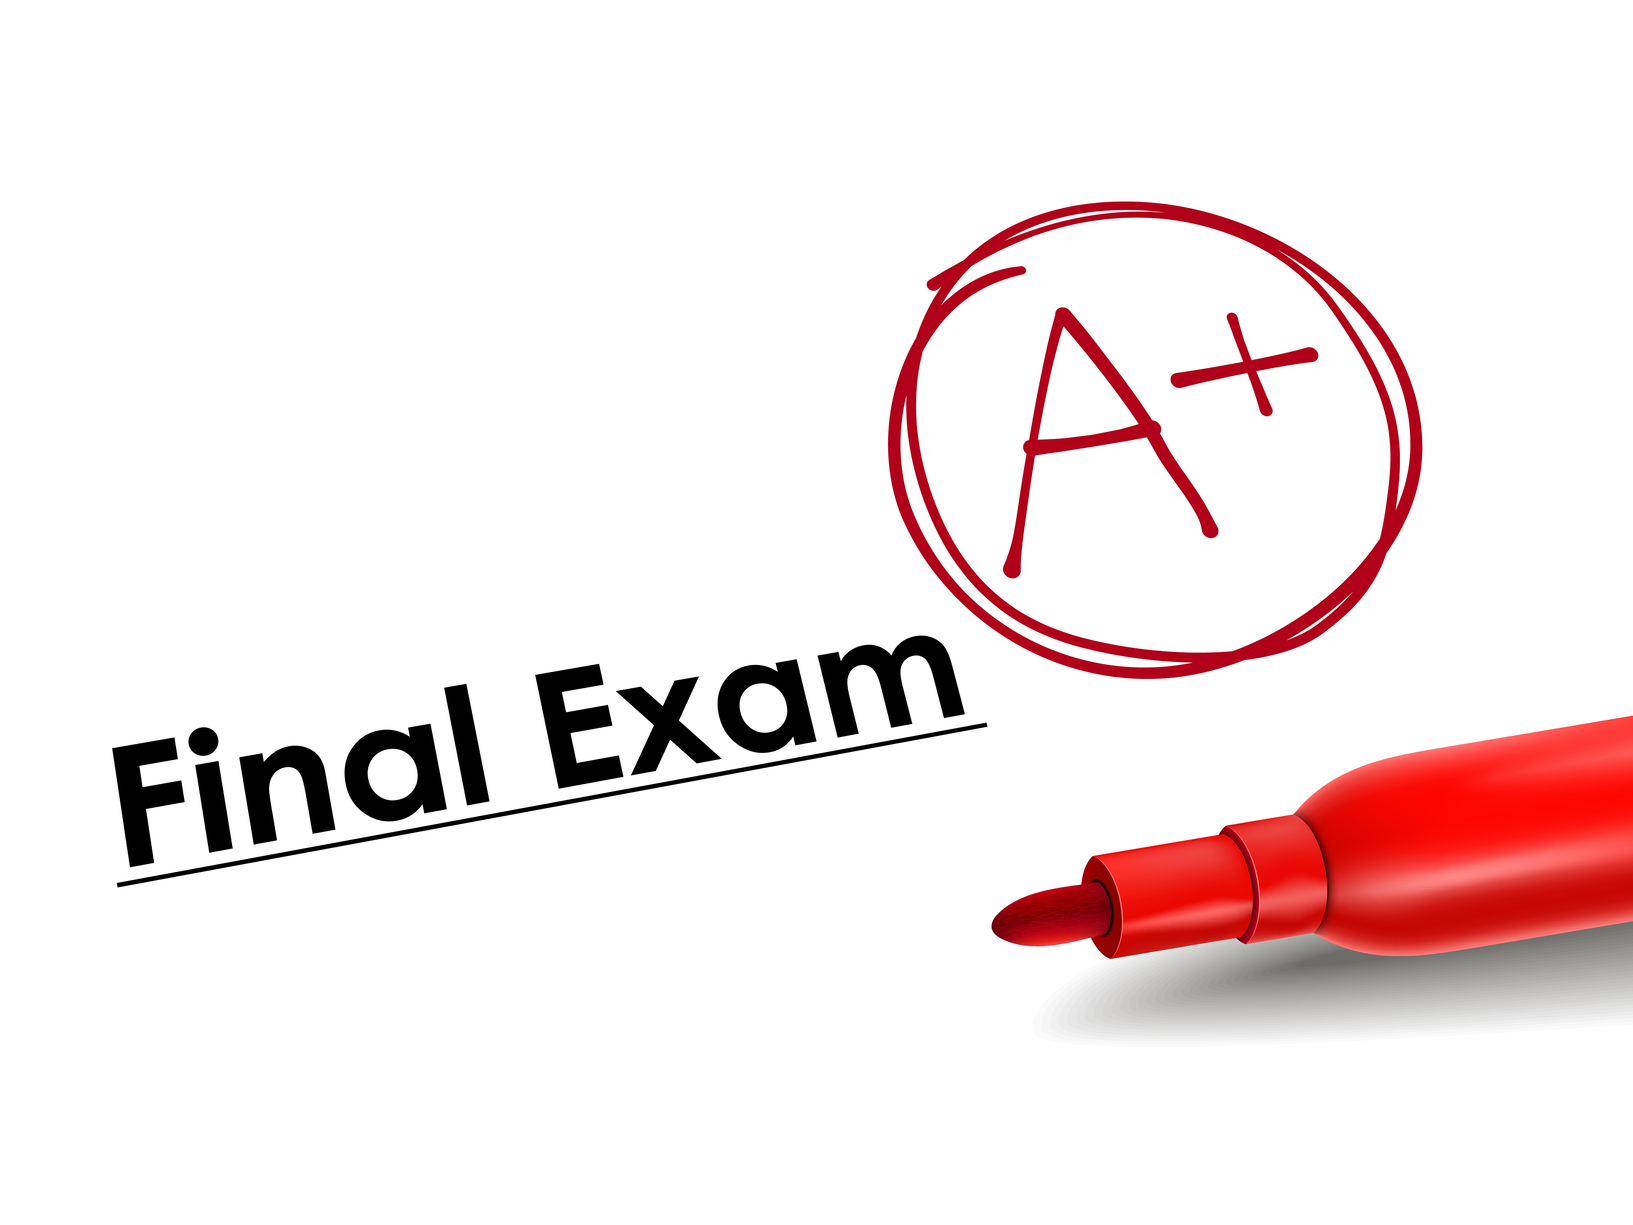 final exam Final exams at adelphi university are set well in advance so students can make arrangements ahead of time if they anticipate a problem.